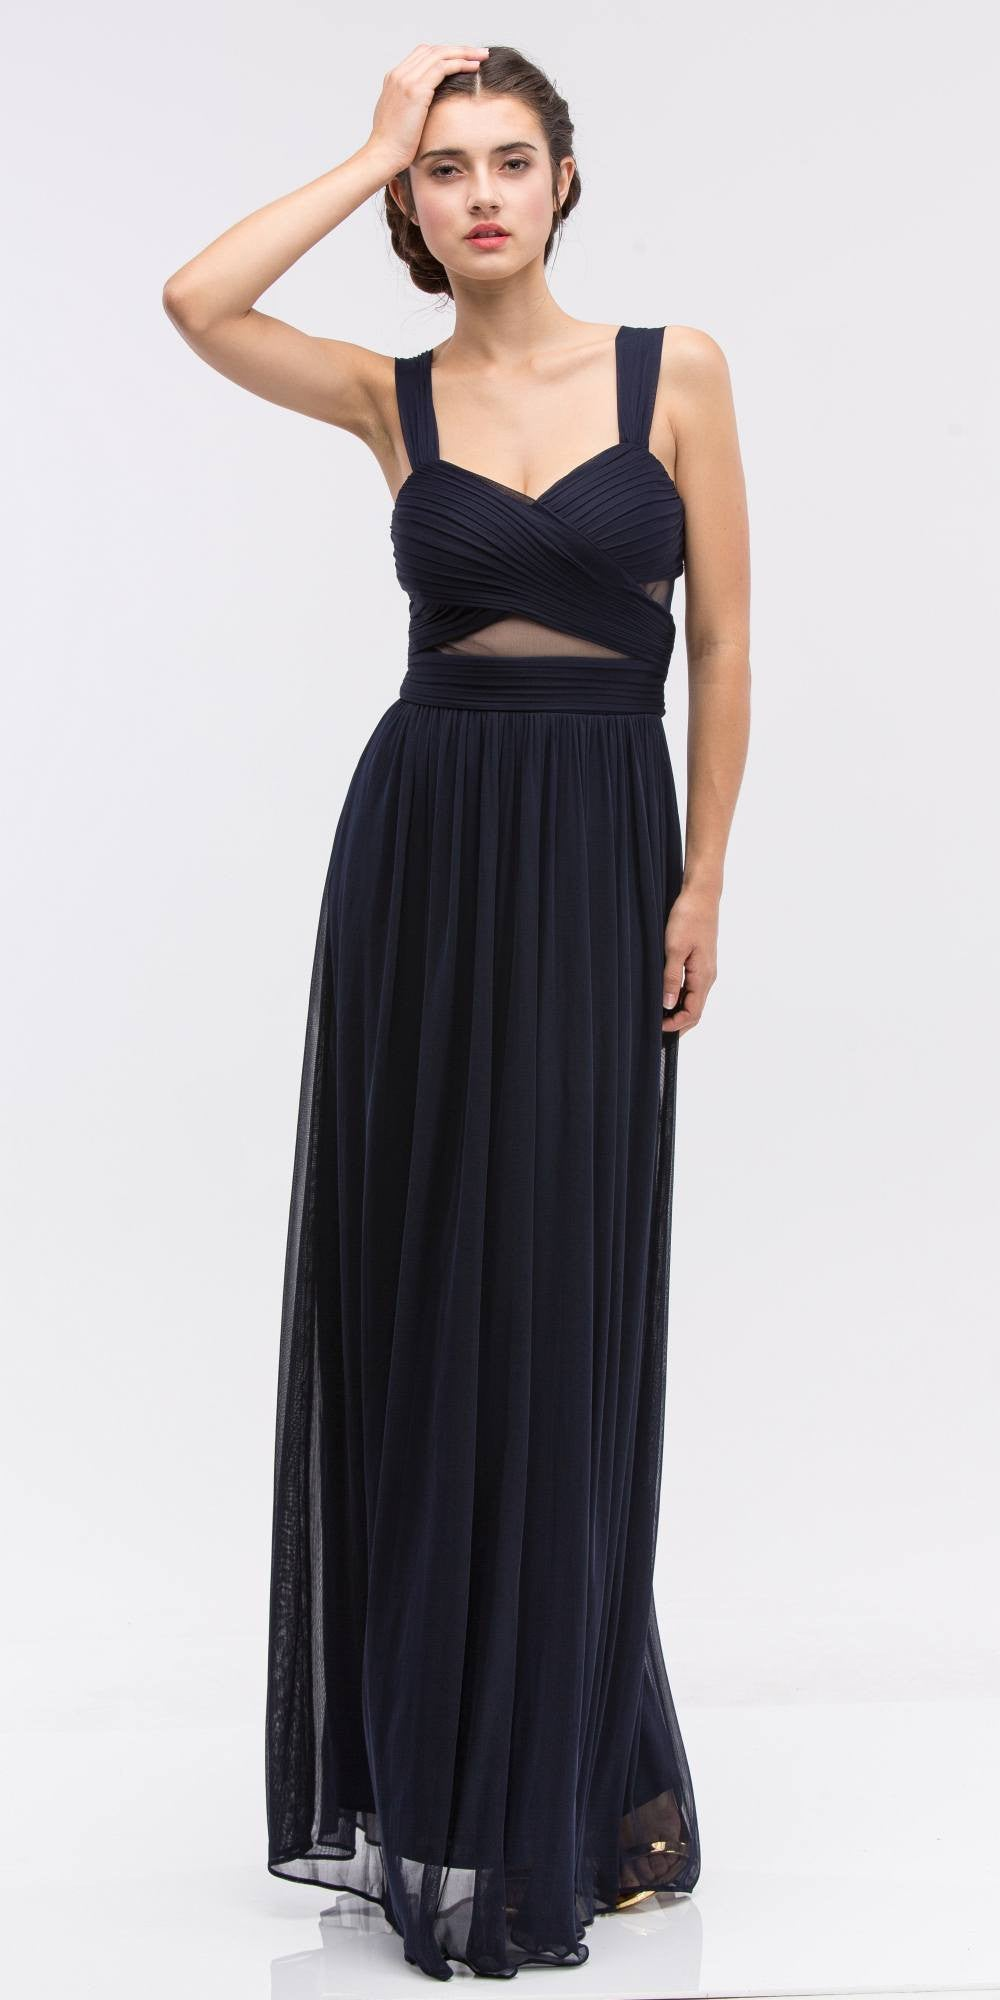 Navy Blue Prom Gown Ruched Bodice Sweetheart Neckline Cut-Out Midriff